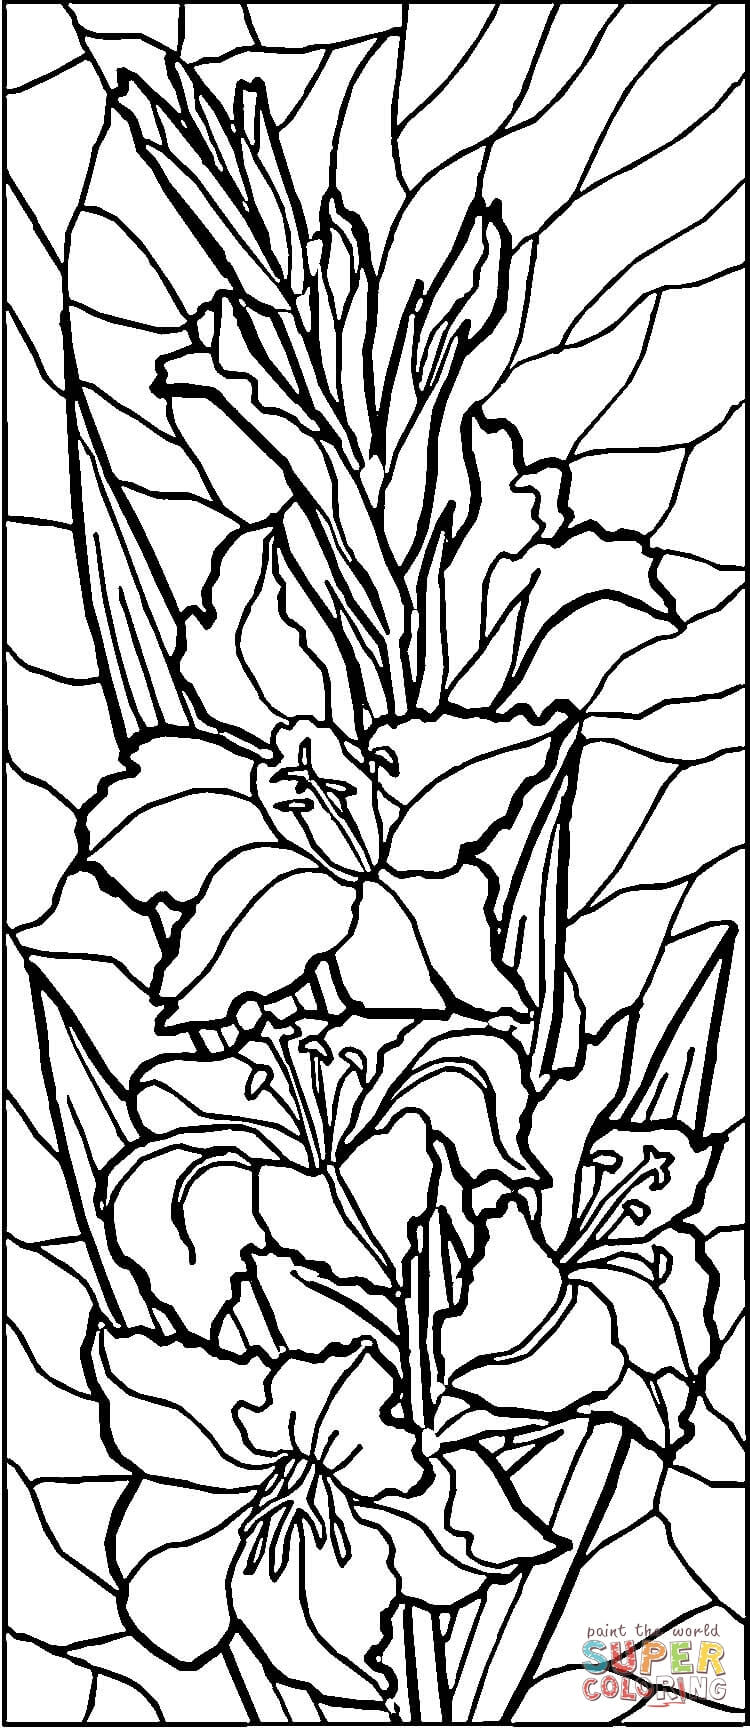 Calla Lily Flower Template Stained Glass Lilies Coloring Page | Free Printable